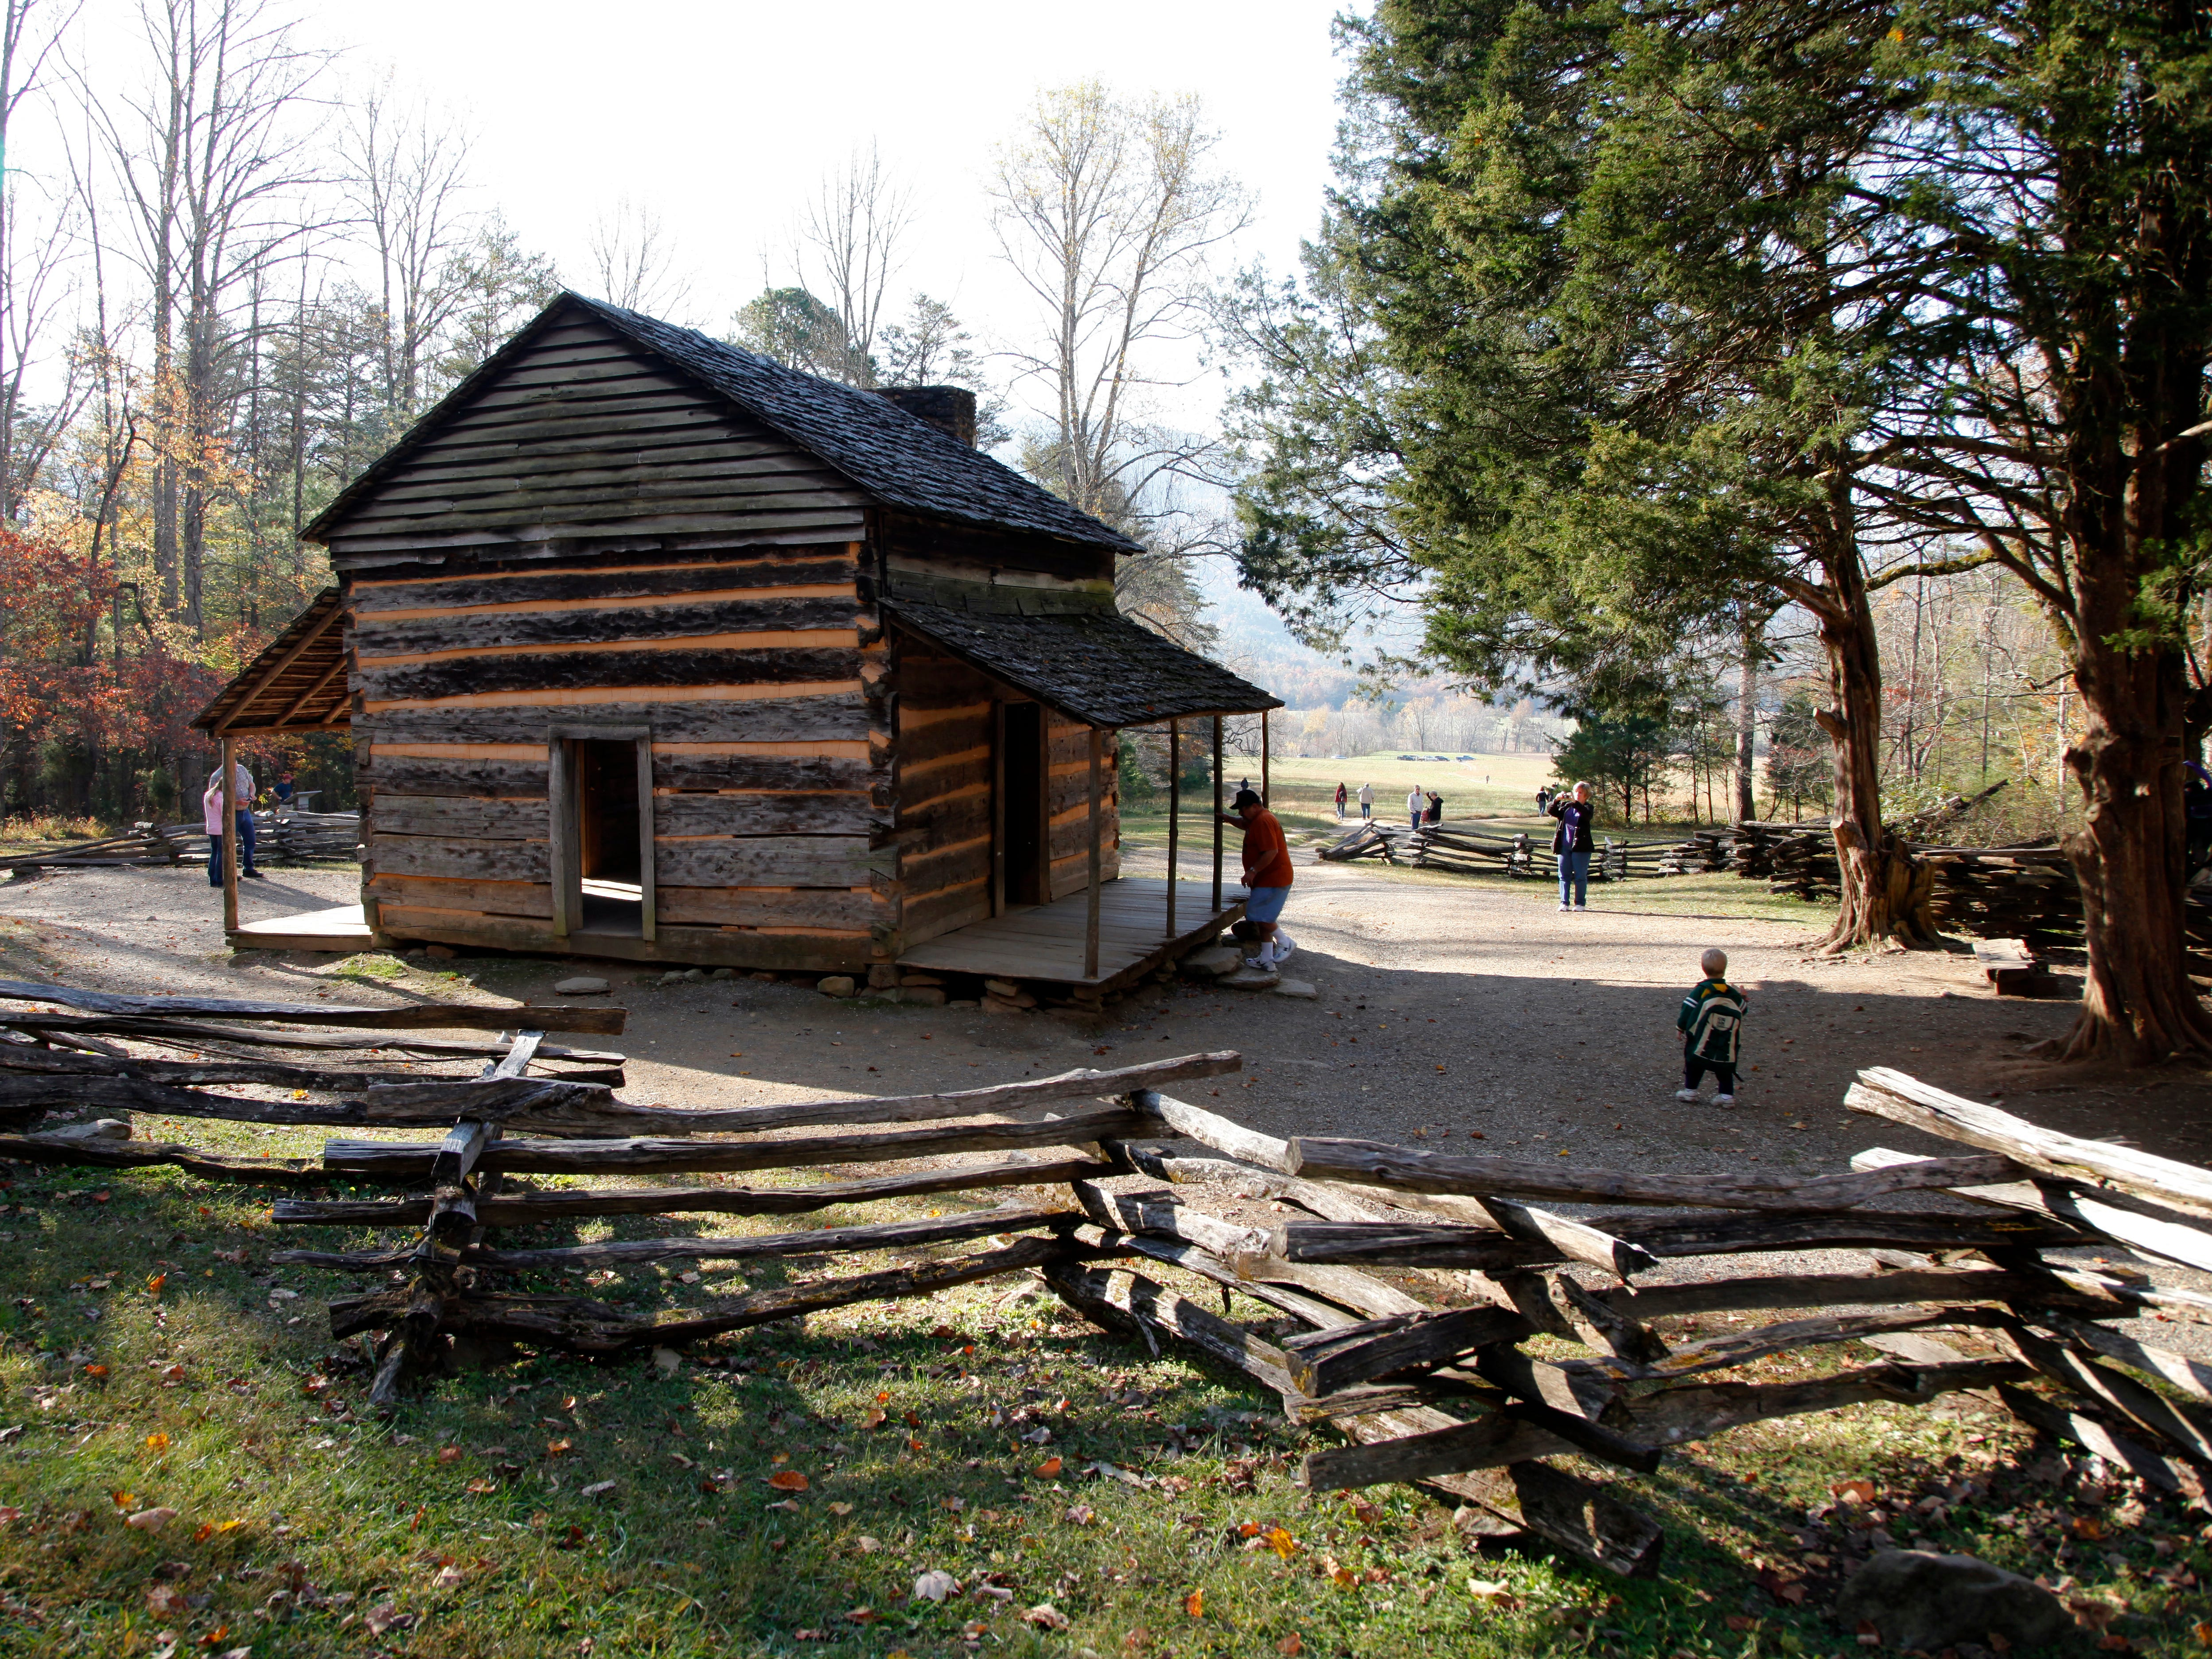 The John Oliver Cabin can be seen just a short distance from the start of the Rich Mountain Loop Trail in Cades Cove in the Great Smoky Mountains National Park Wednesday, Oct. 26, 2011.  (ADAM BRIMER/NEWS SENTINEL)